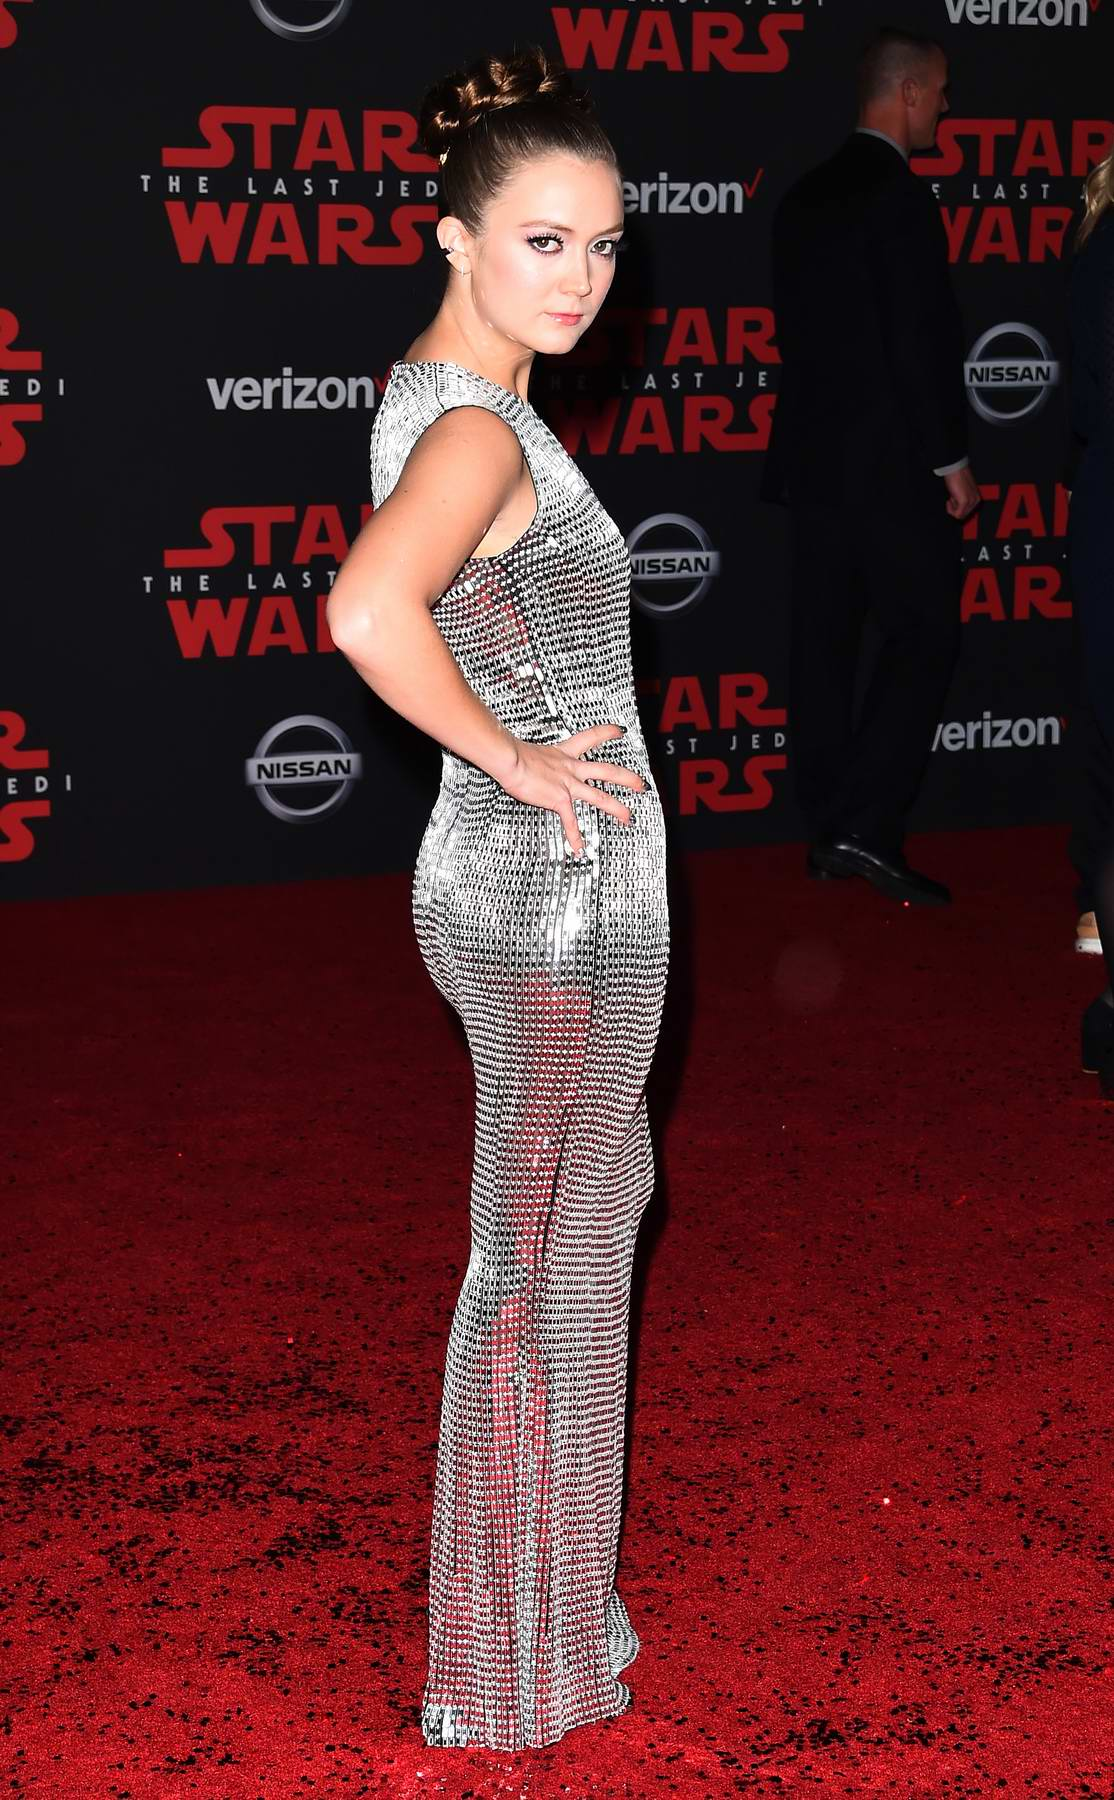 Billie Lourd at the World premiere for 'Star Wars: The Last Jedi' at the Shrine Auditorium in Los Angeles